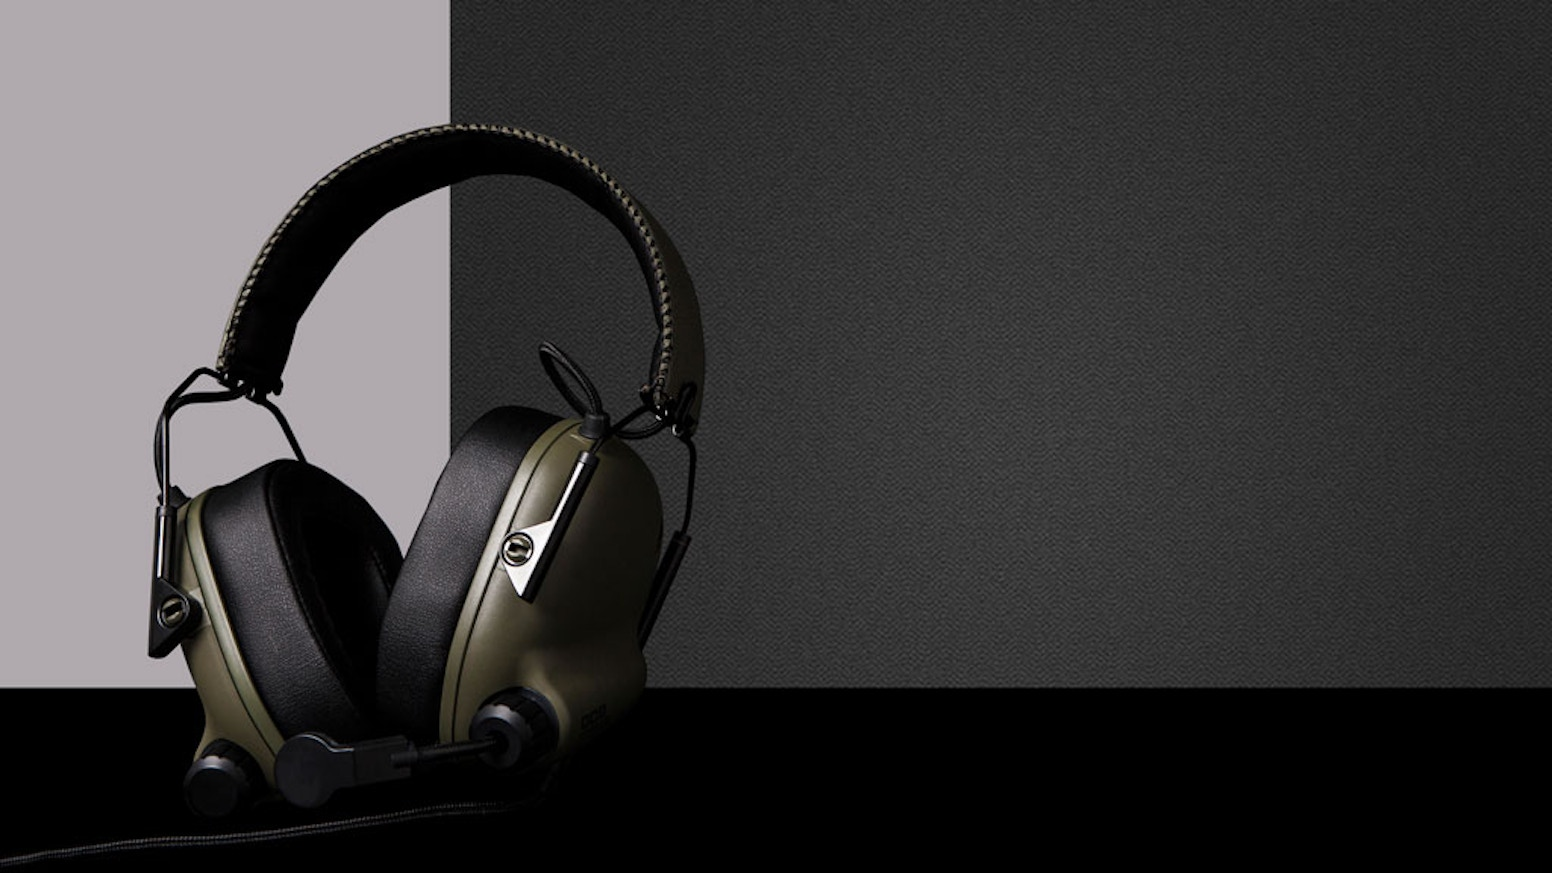 Tactical Master - Most Comfortable Immersive Gaming Headset by James ... 1008c8f84b